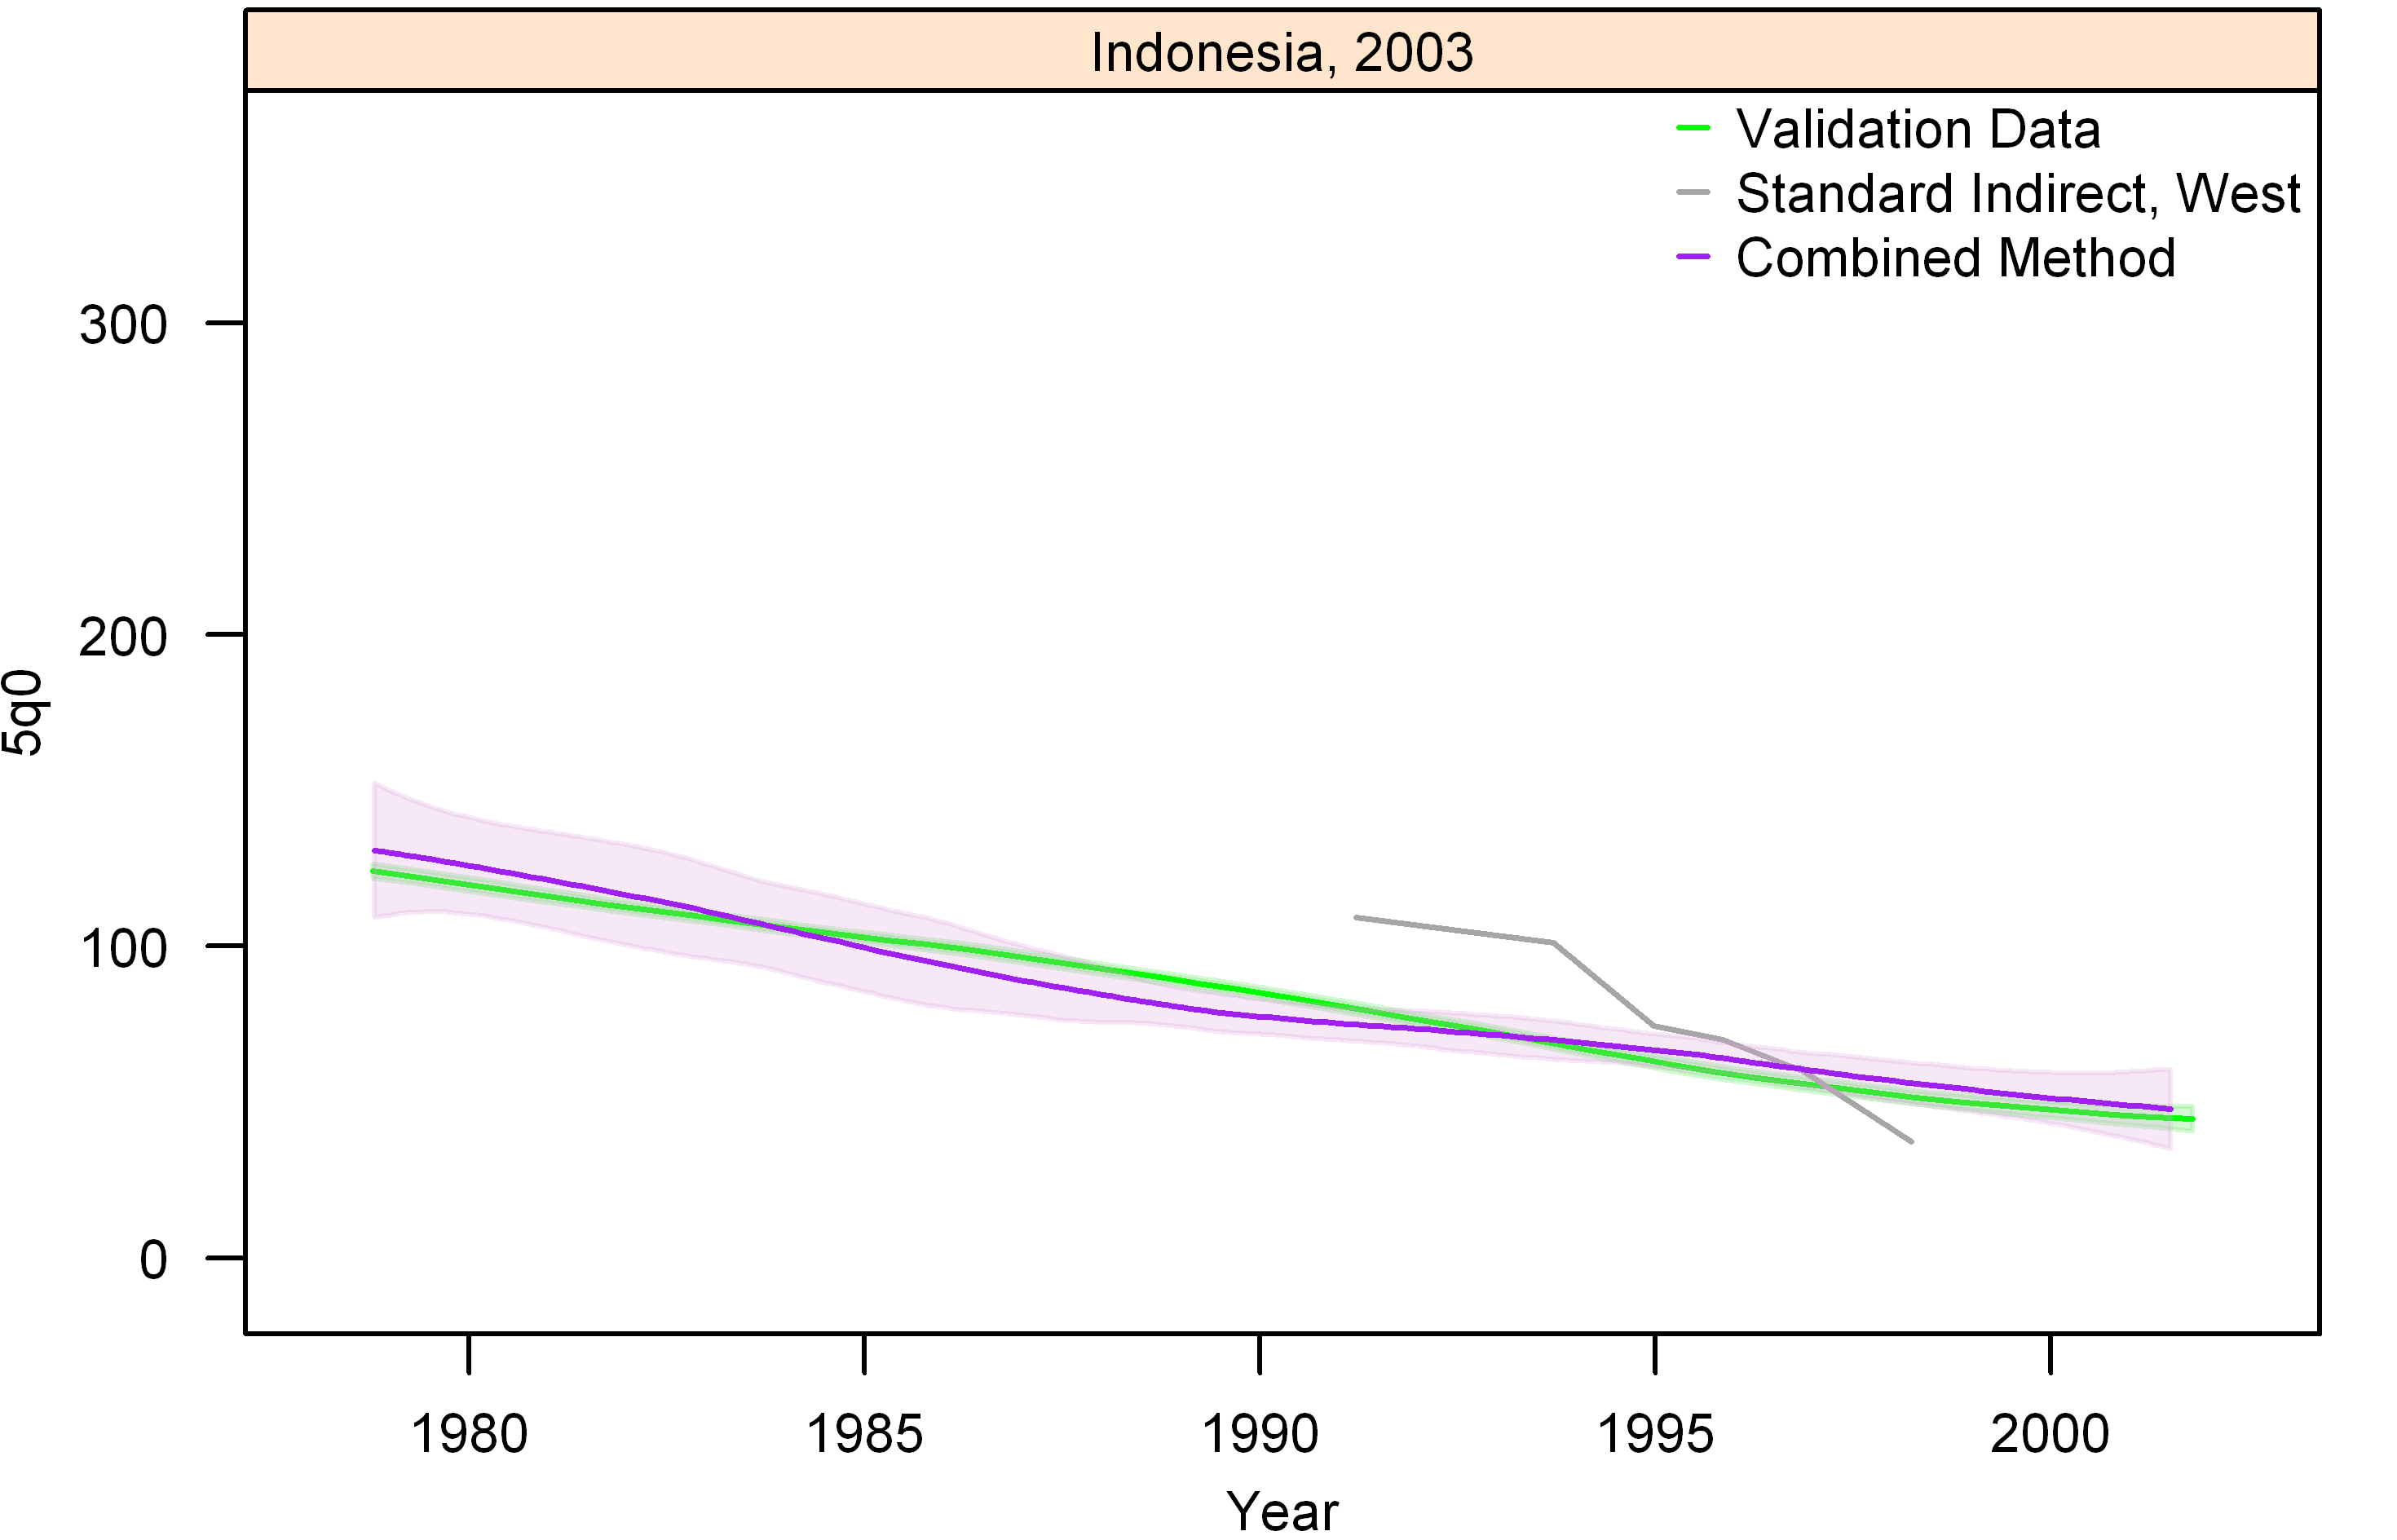 Graphs of estimates from summary birth histories using the best-performing combined method and the standard indirect (West) method. Section II, Indonesia, 2003.